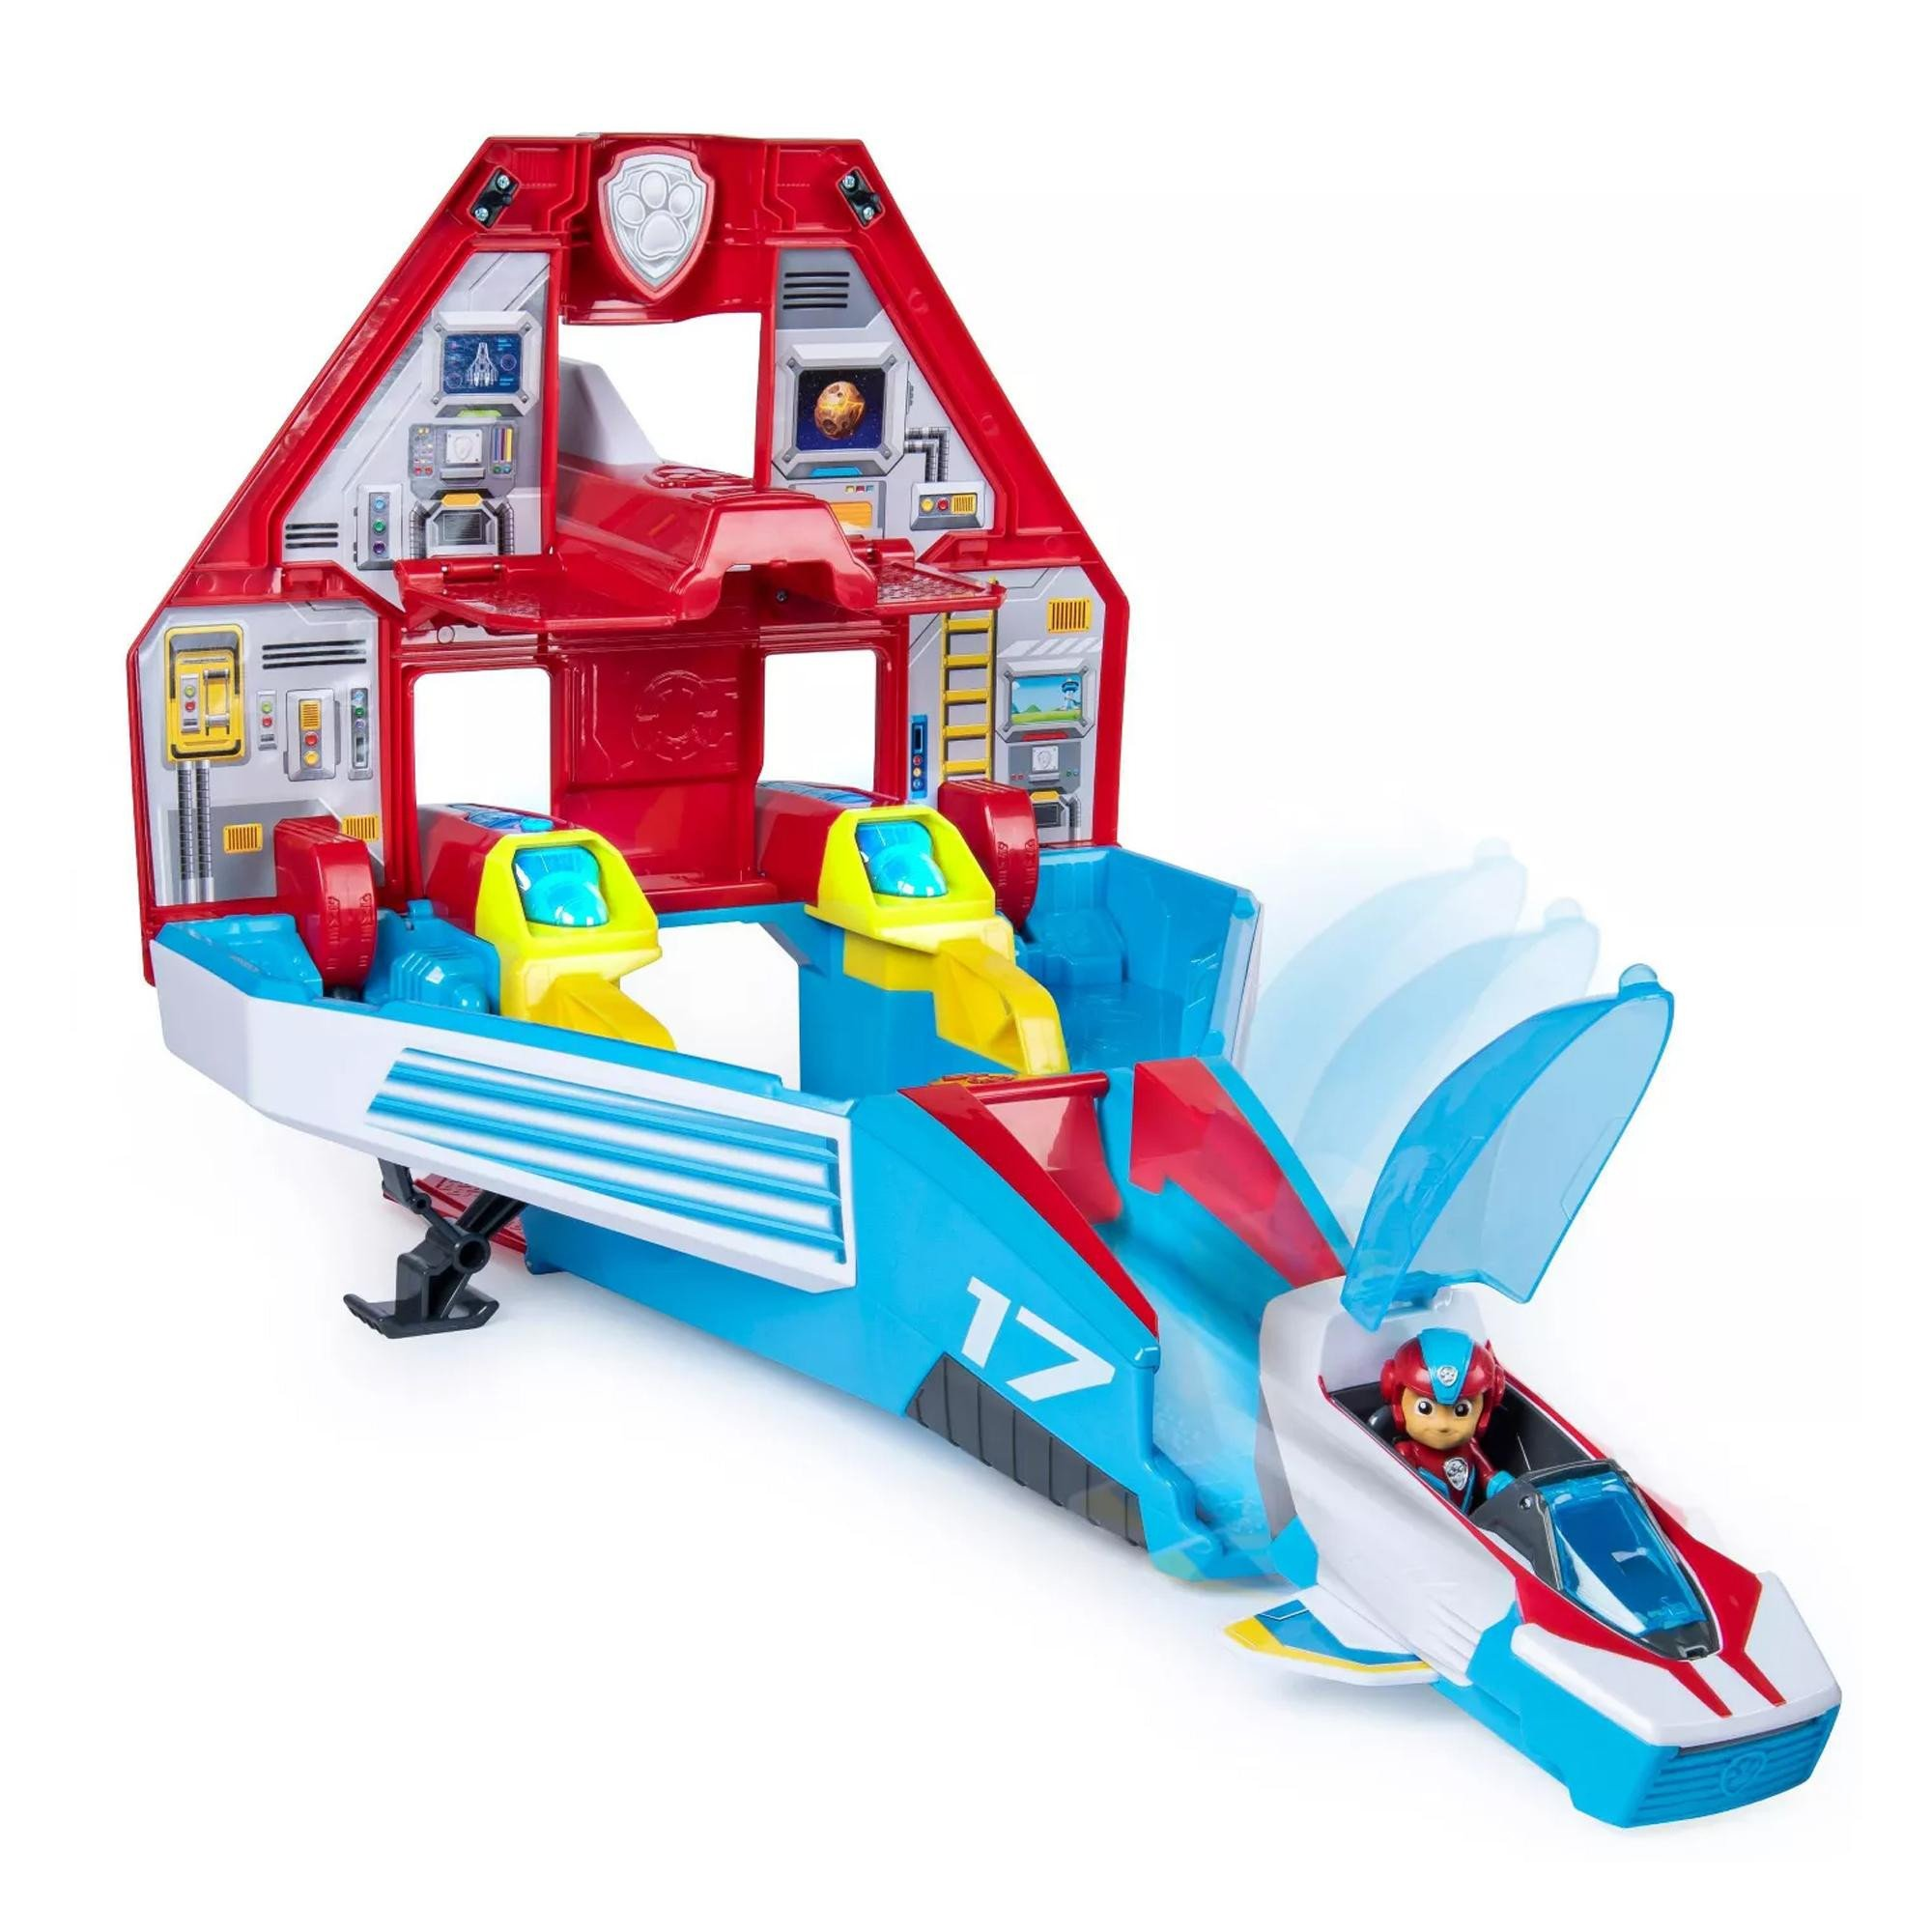 Paw Patrol Bedroom Decor Best Of Spin Master Paw Patrol Super Mighty Pups Transforming Jet